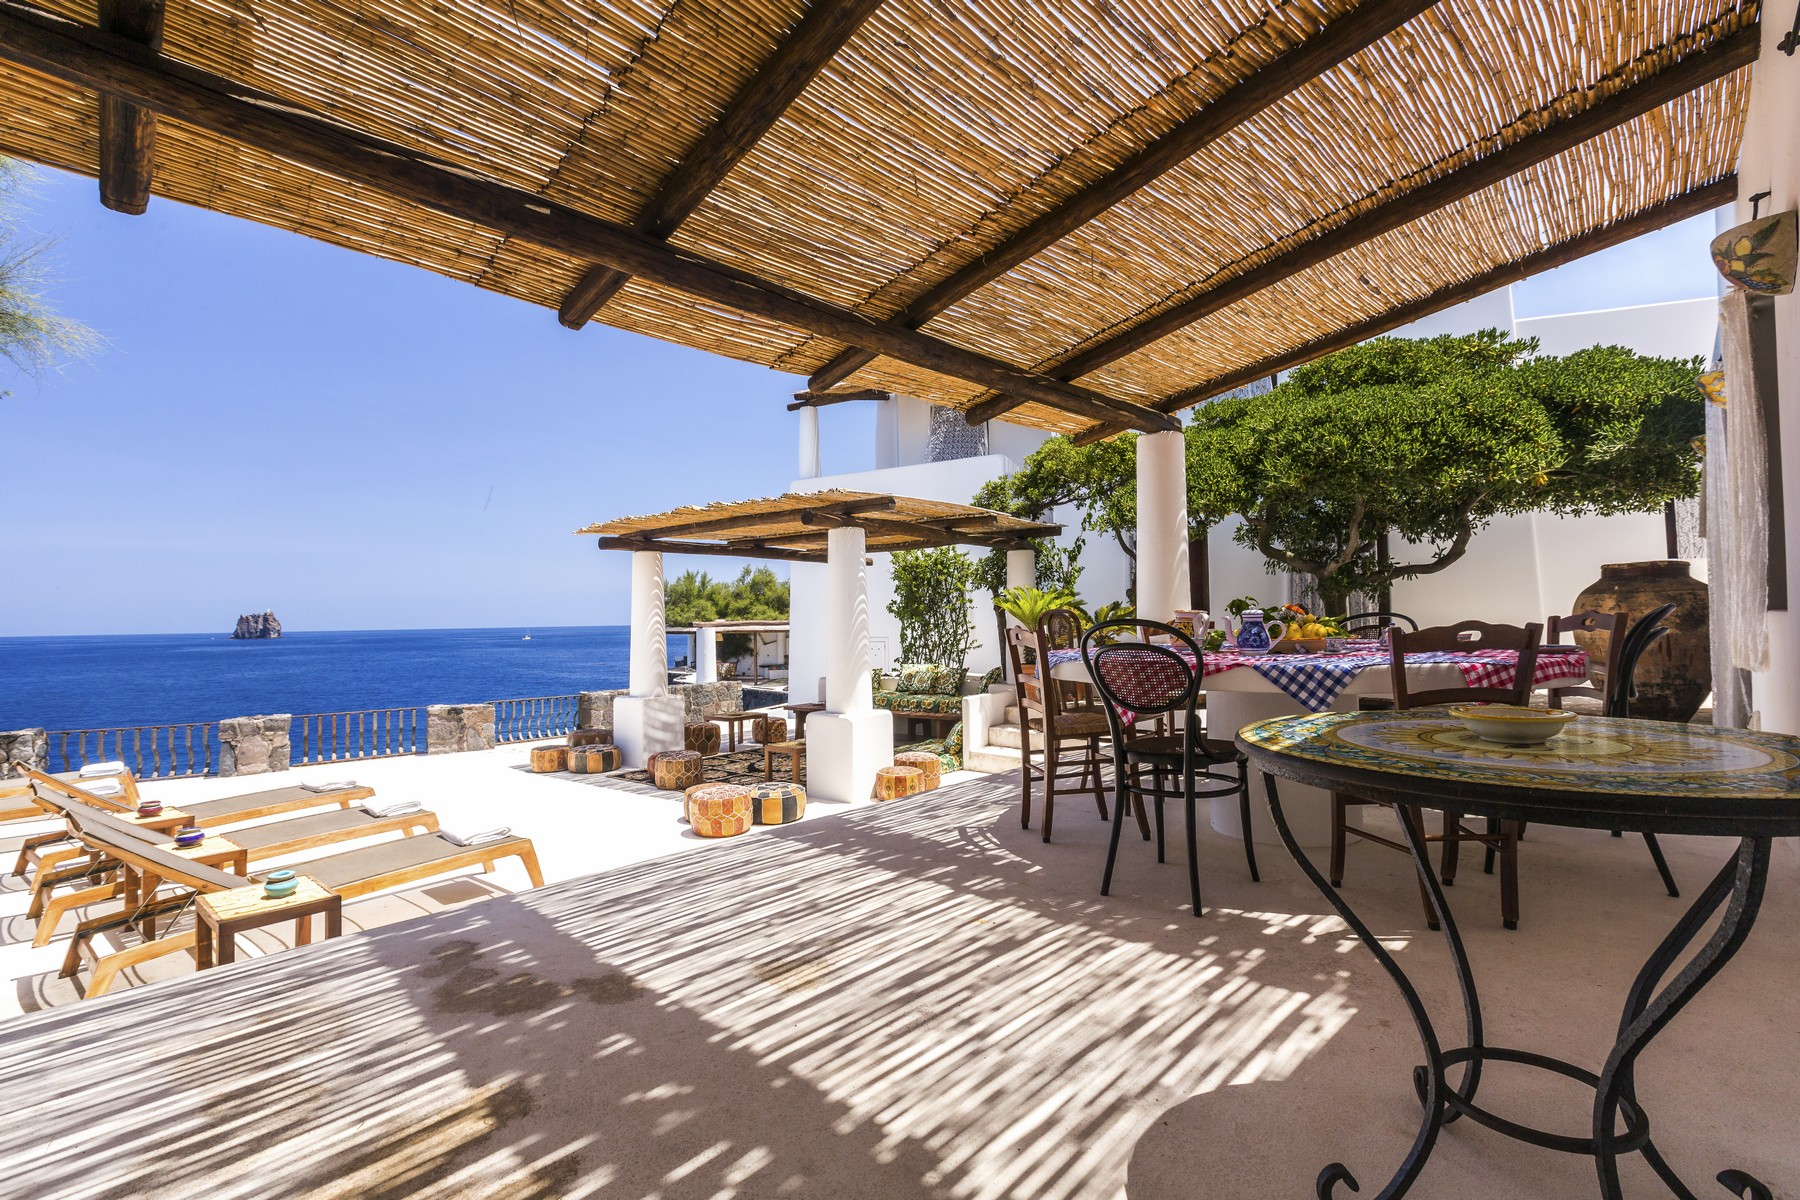 Additional photo for property listing at Fashion glamour at the heart of the Mediterranean Stromboli Stromboli, Messina 98050 Italia